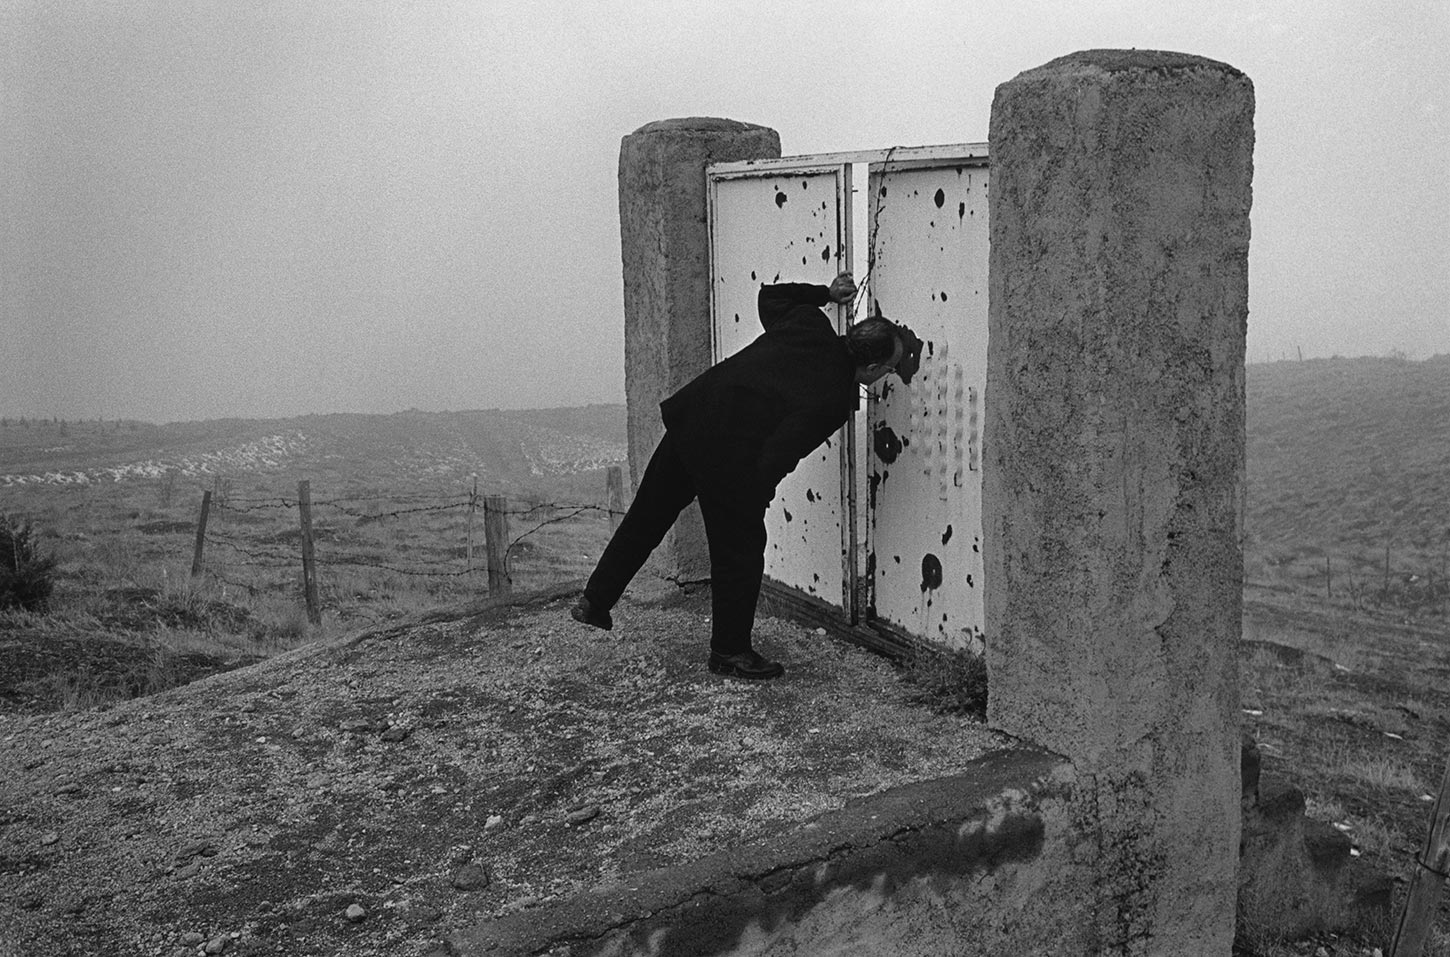 Abbas Kiarostami on the hills surrounding the capital. Tehran, Iran. 1997.